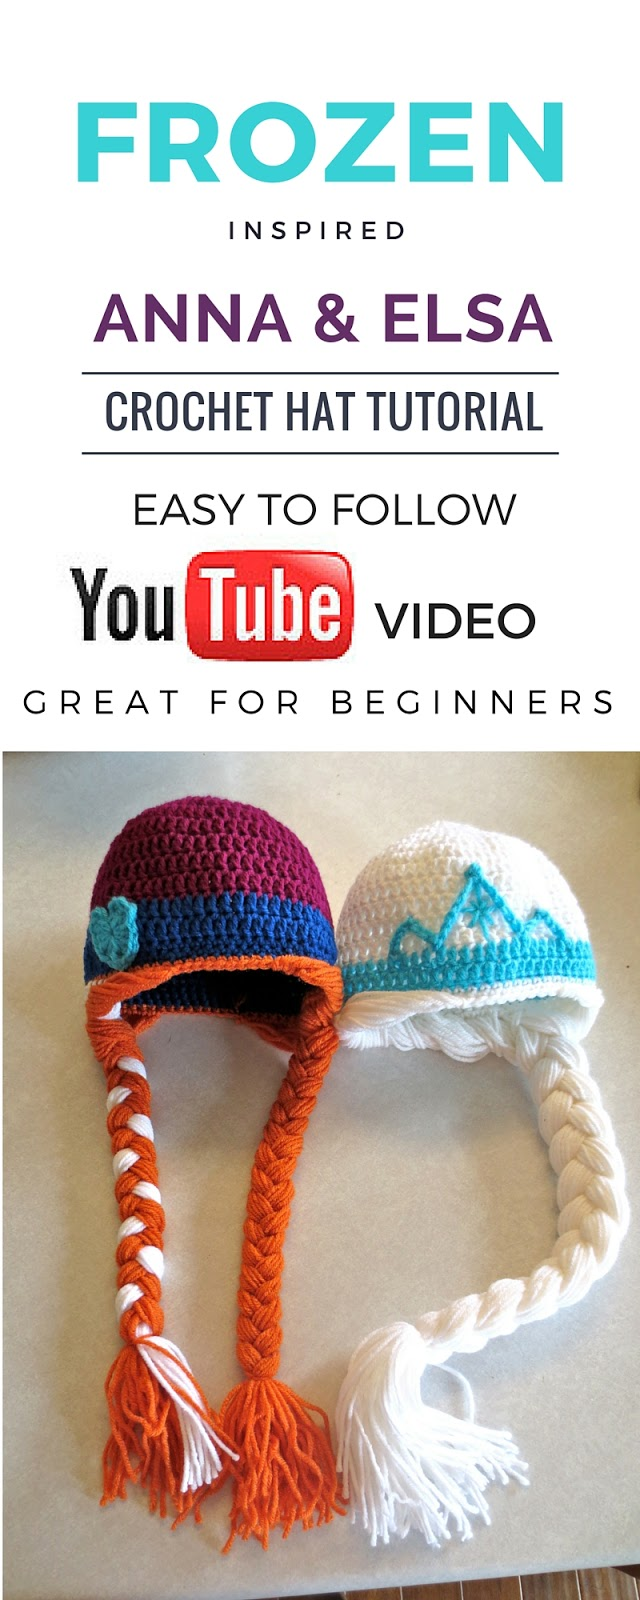 Free Crochet Pattern For Anna Hat : HanDIY Tutorials: Frozen Inspired Crochet Hats